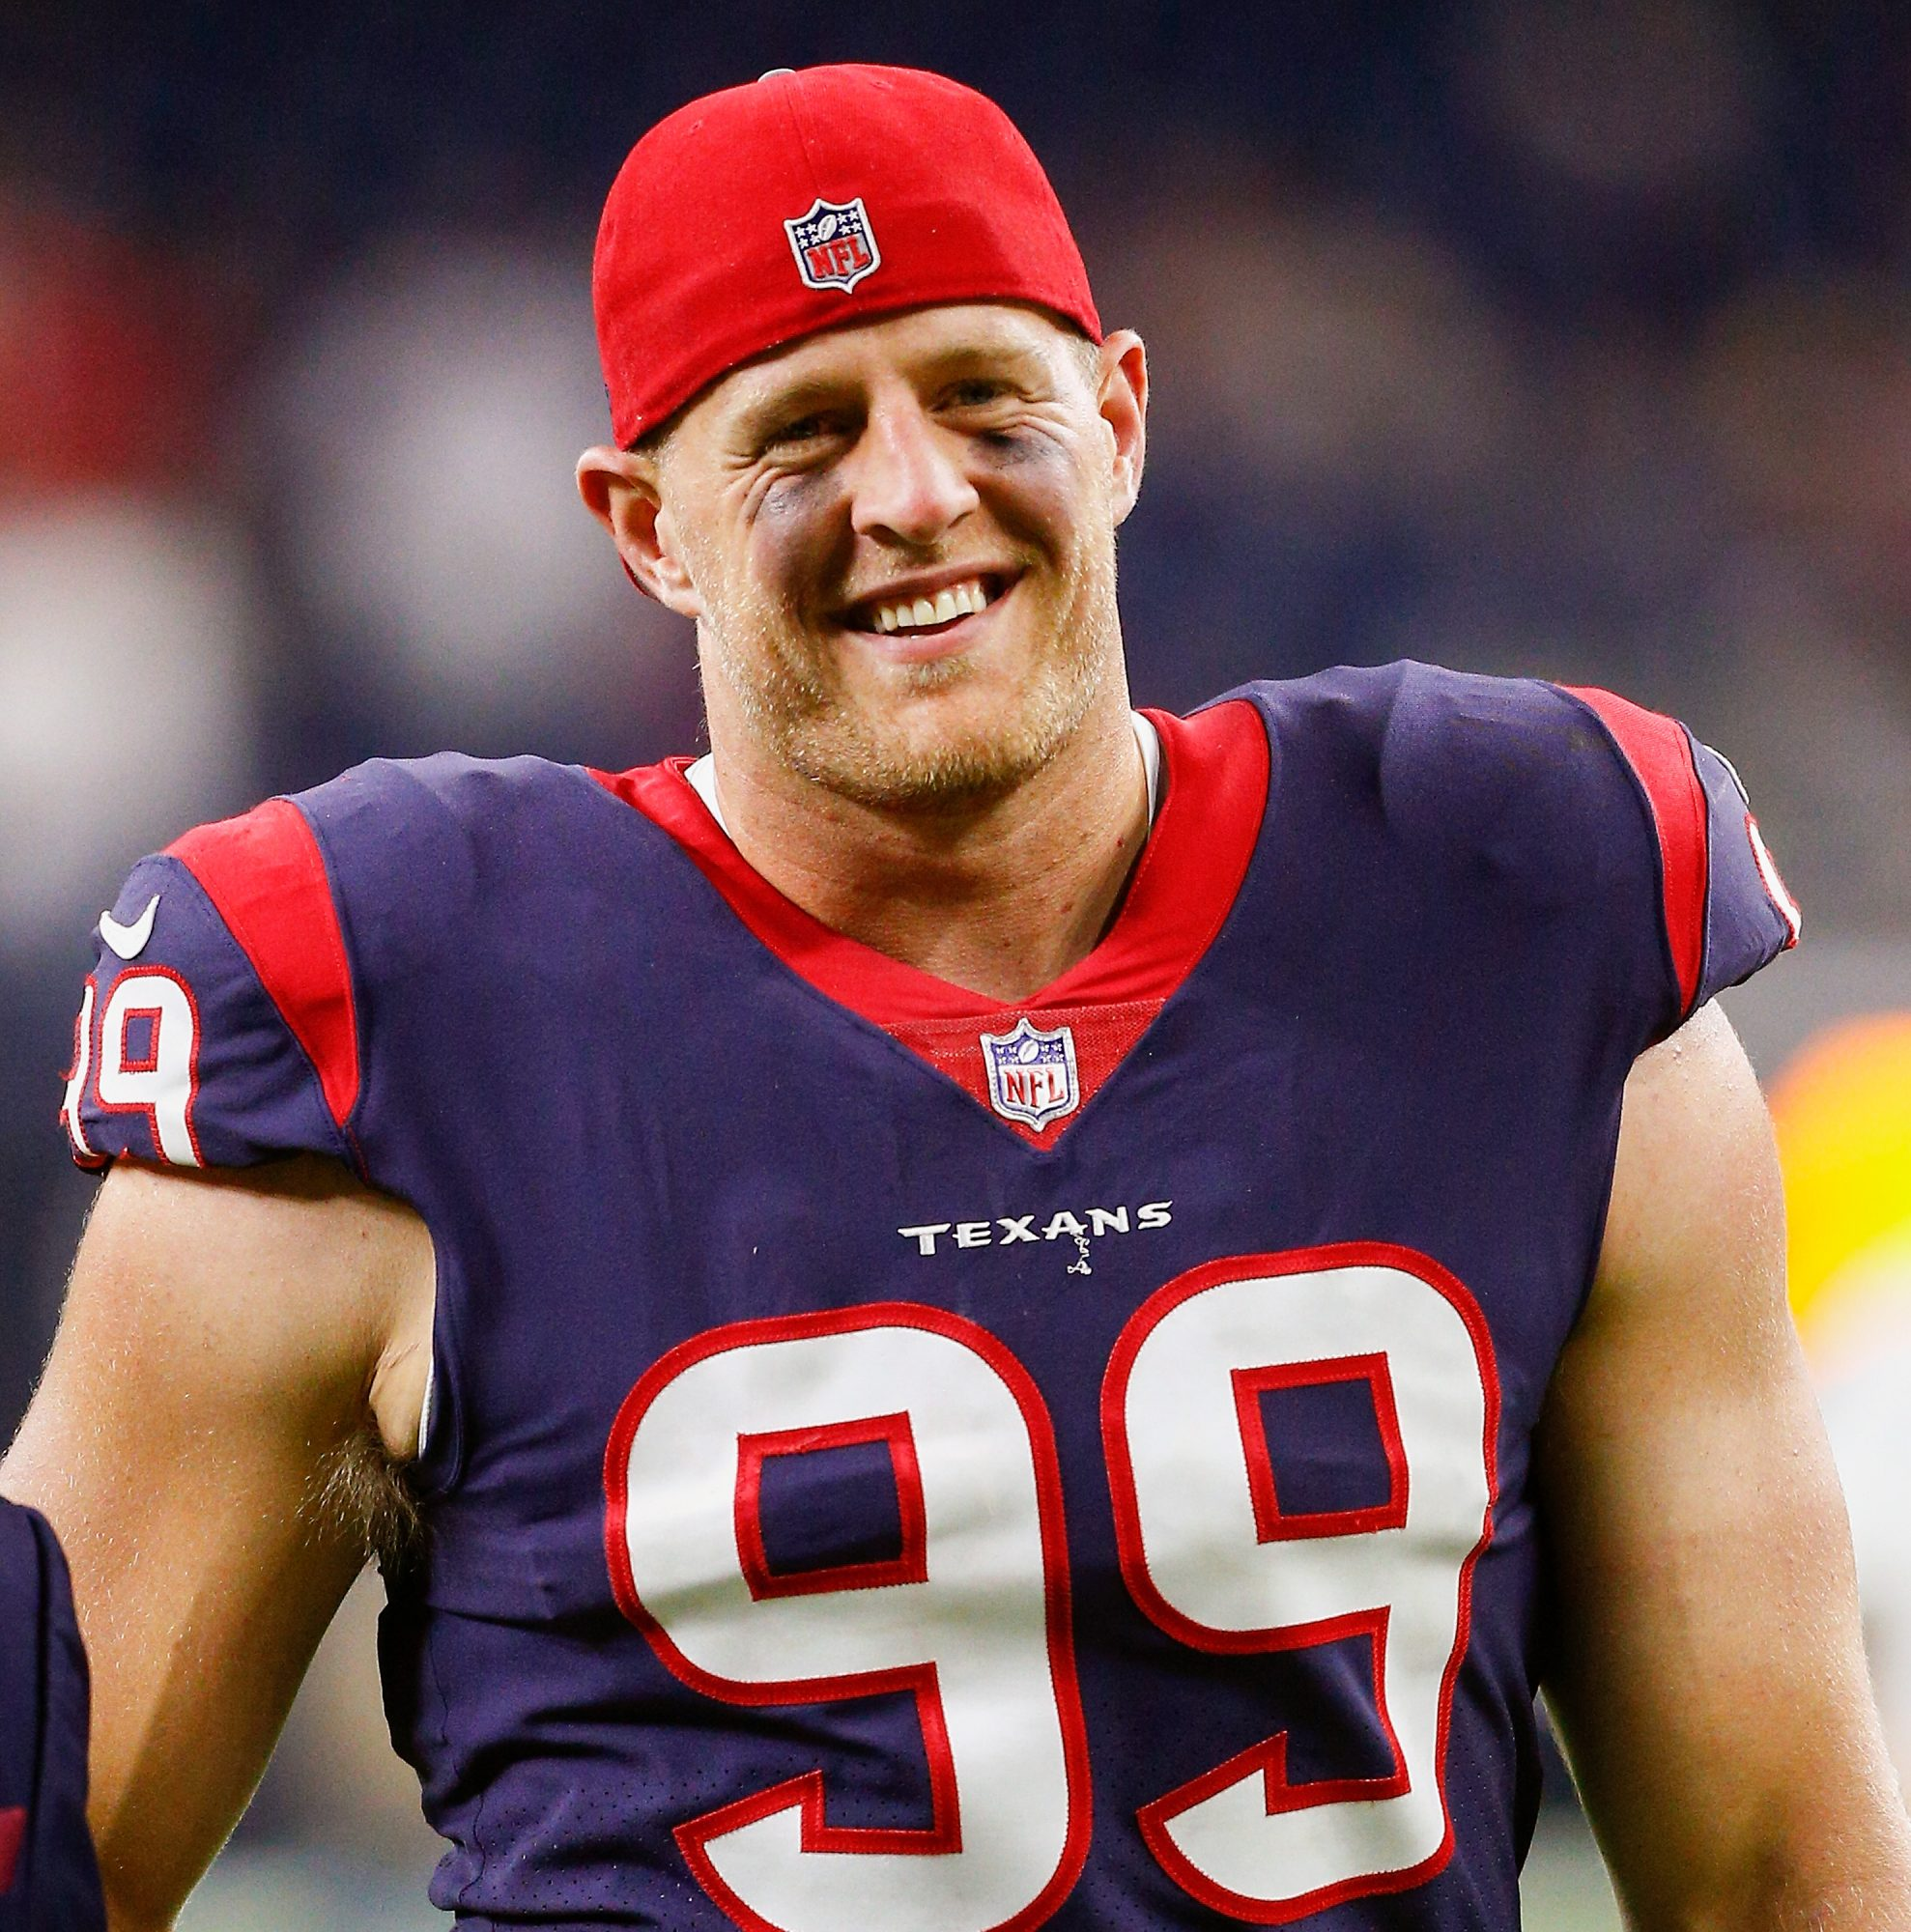 JJ Watt smiling in uniform